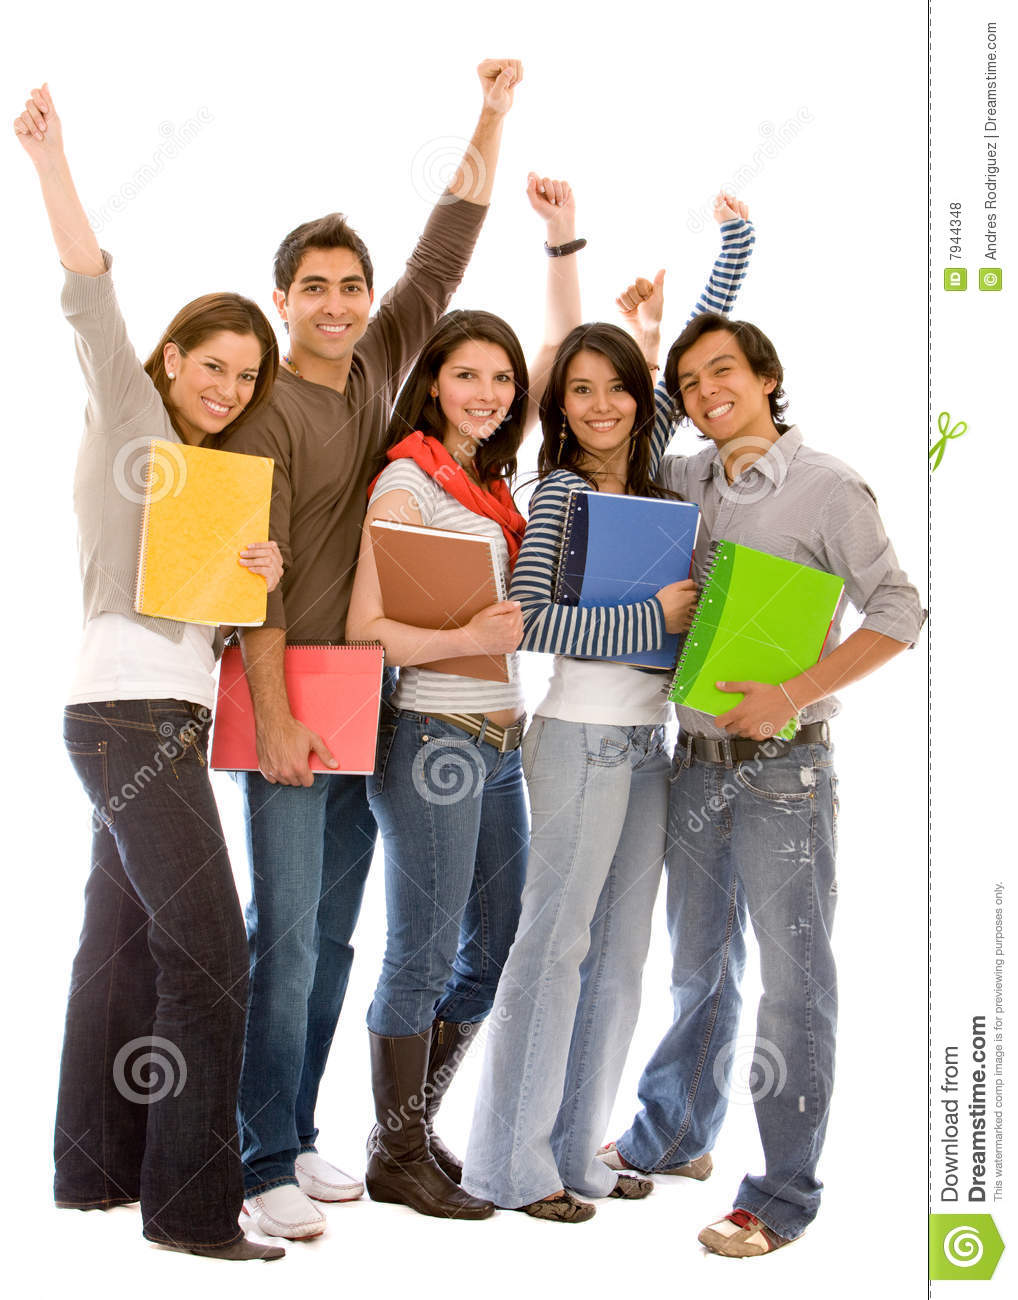 Happy Students Royalty Free Stock Photos - Image: 7944348